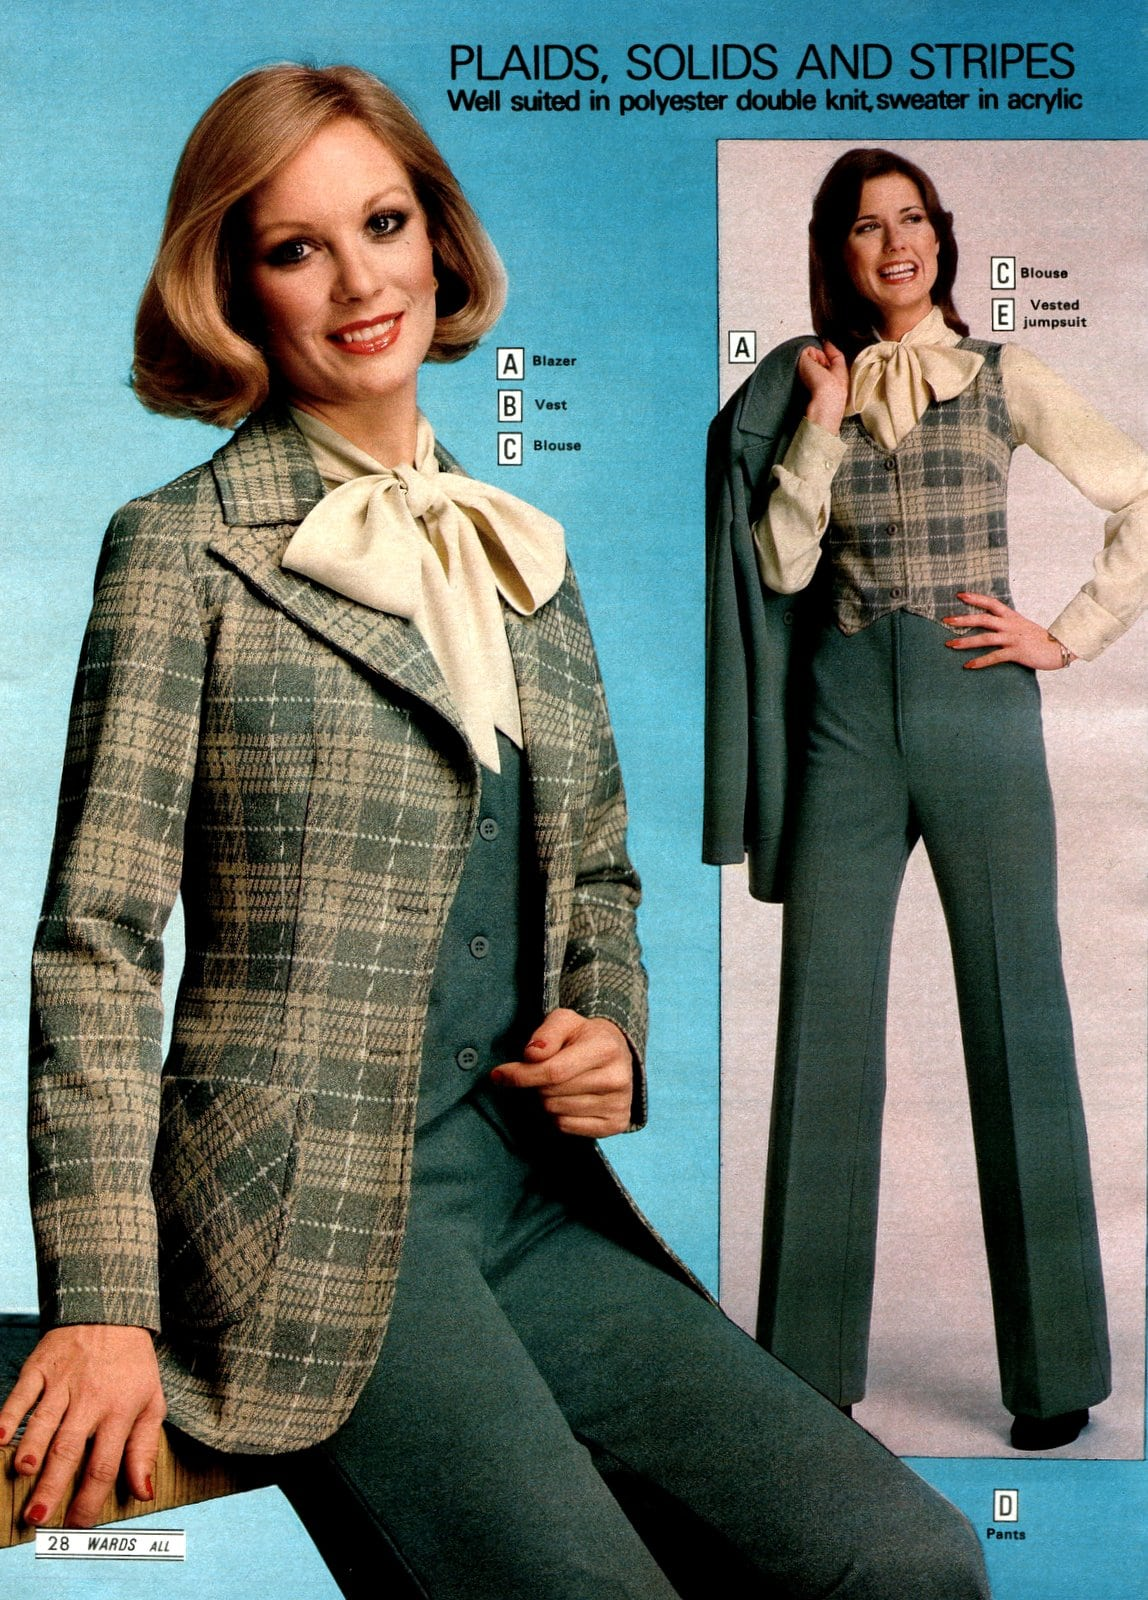 Stylish plaid vintage suits for women from 1979